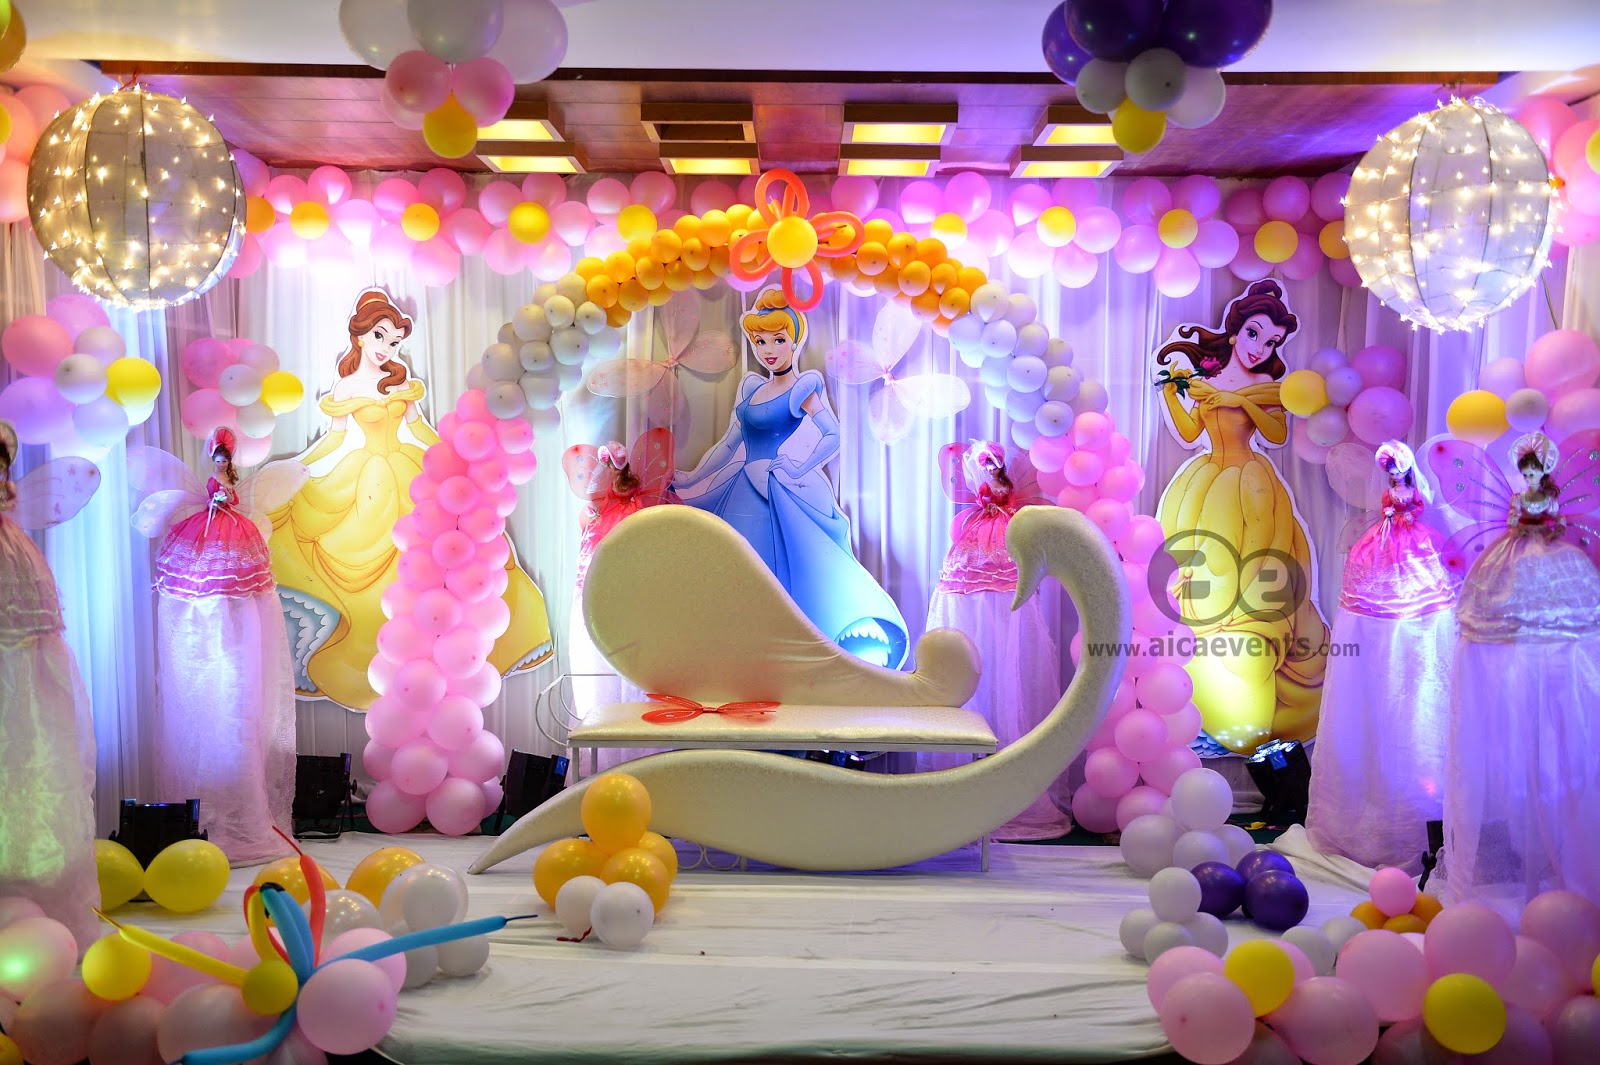 Apartment Requirements Aicaevents Barbie Theme Decorations By Aica Events